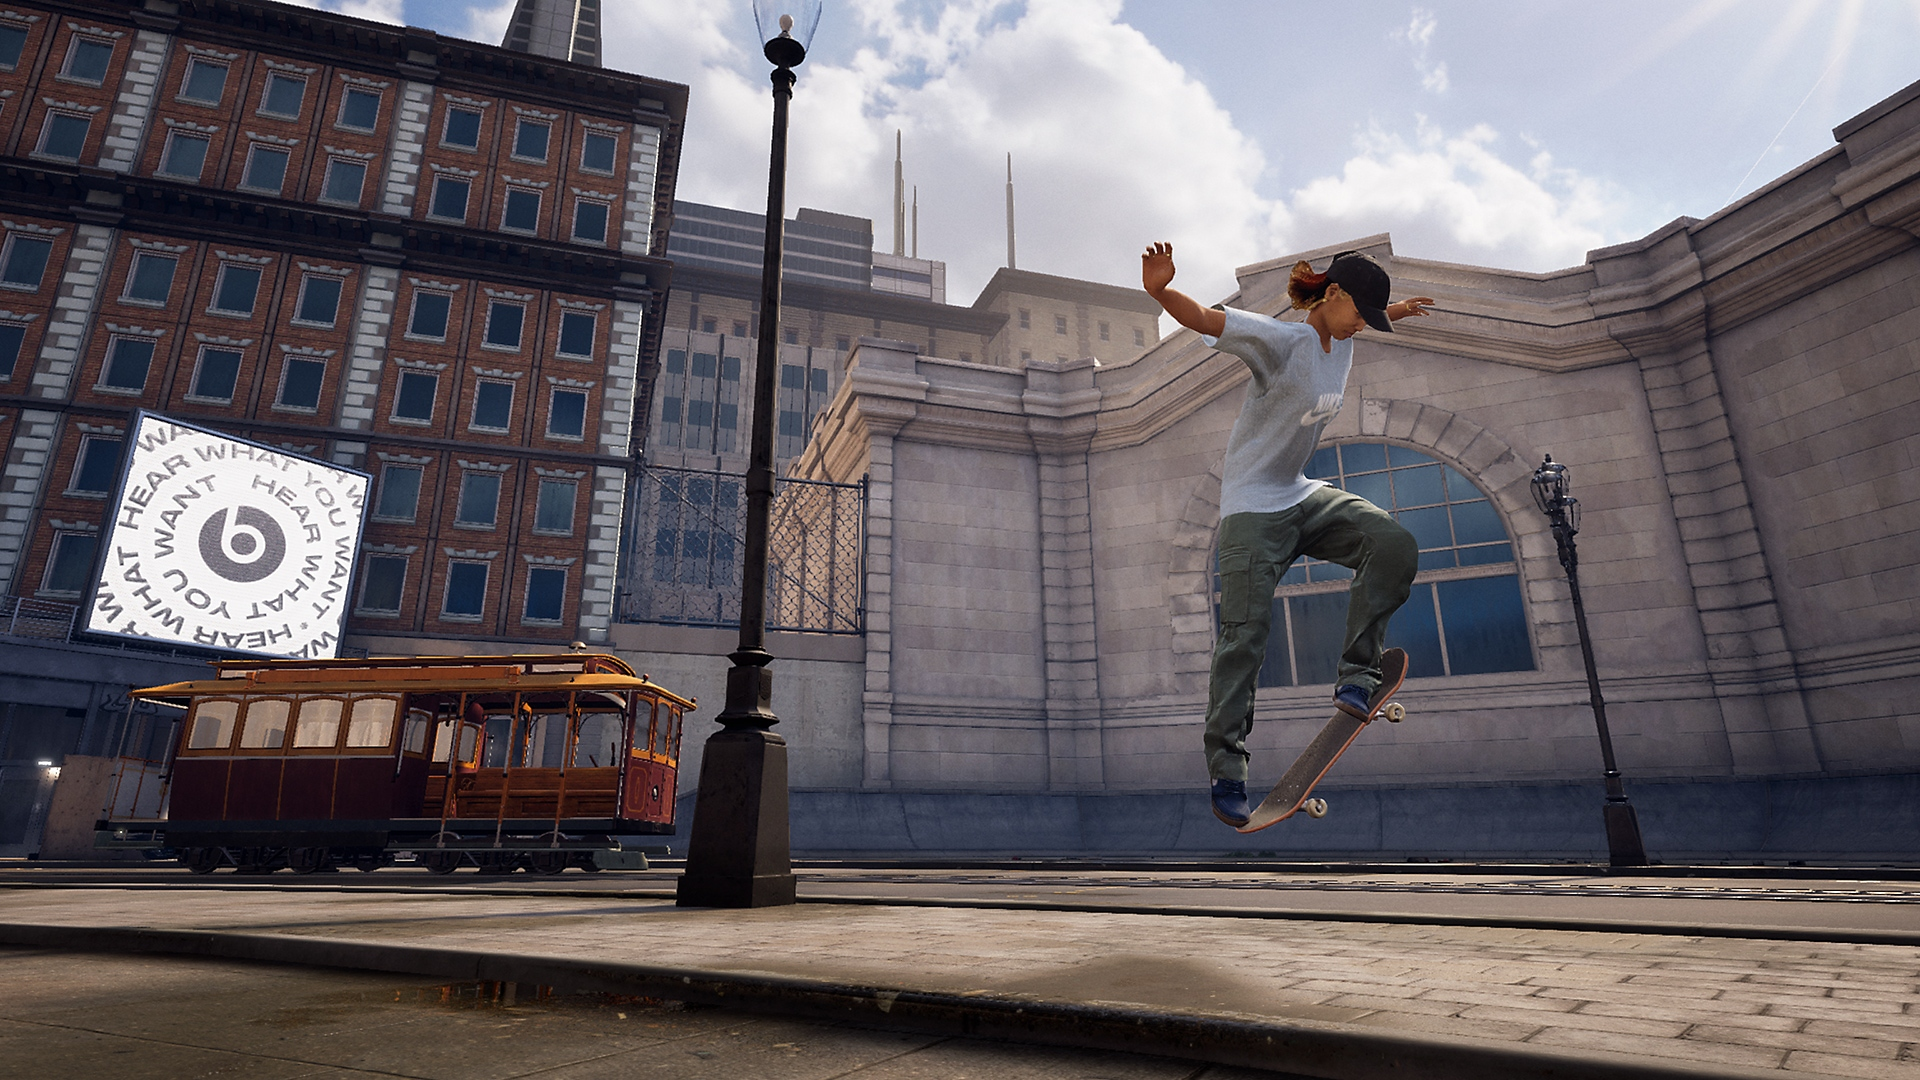 Tony Hawk's Pro Skater 1 + 2 - Gallery Screenshot 12